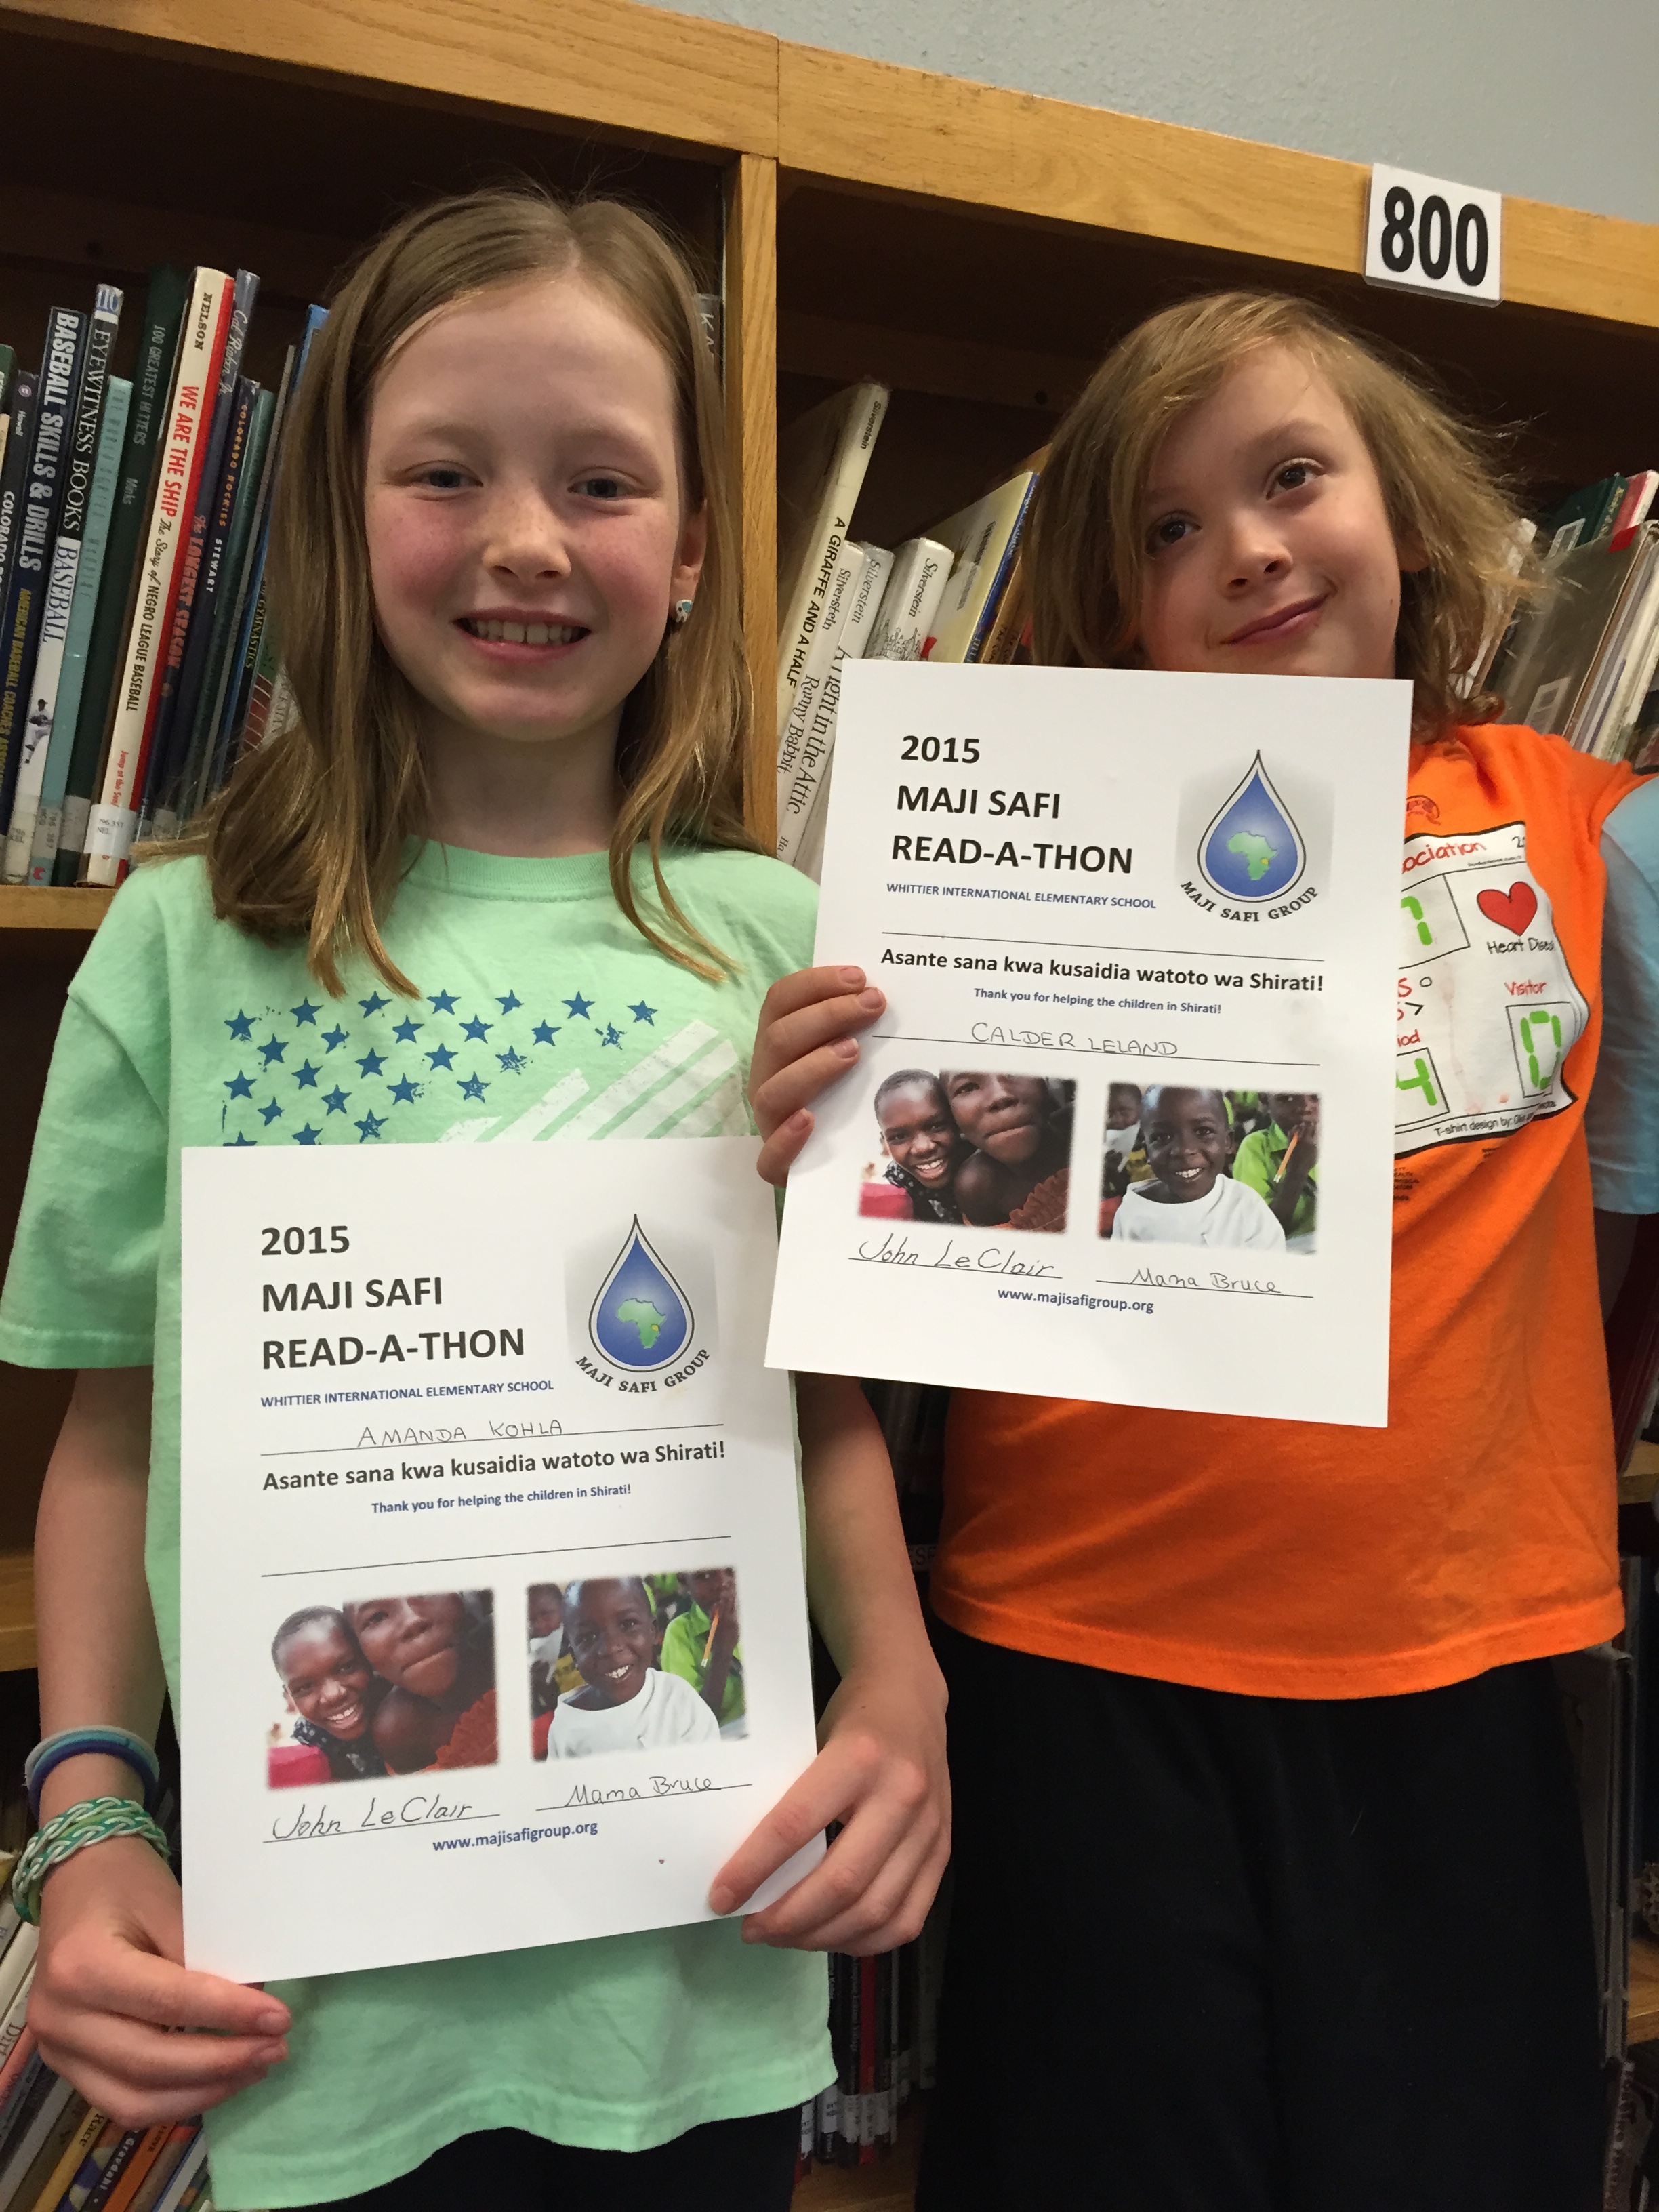 Third graders Amanda Kohla and Calder Leland